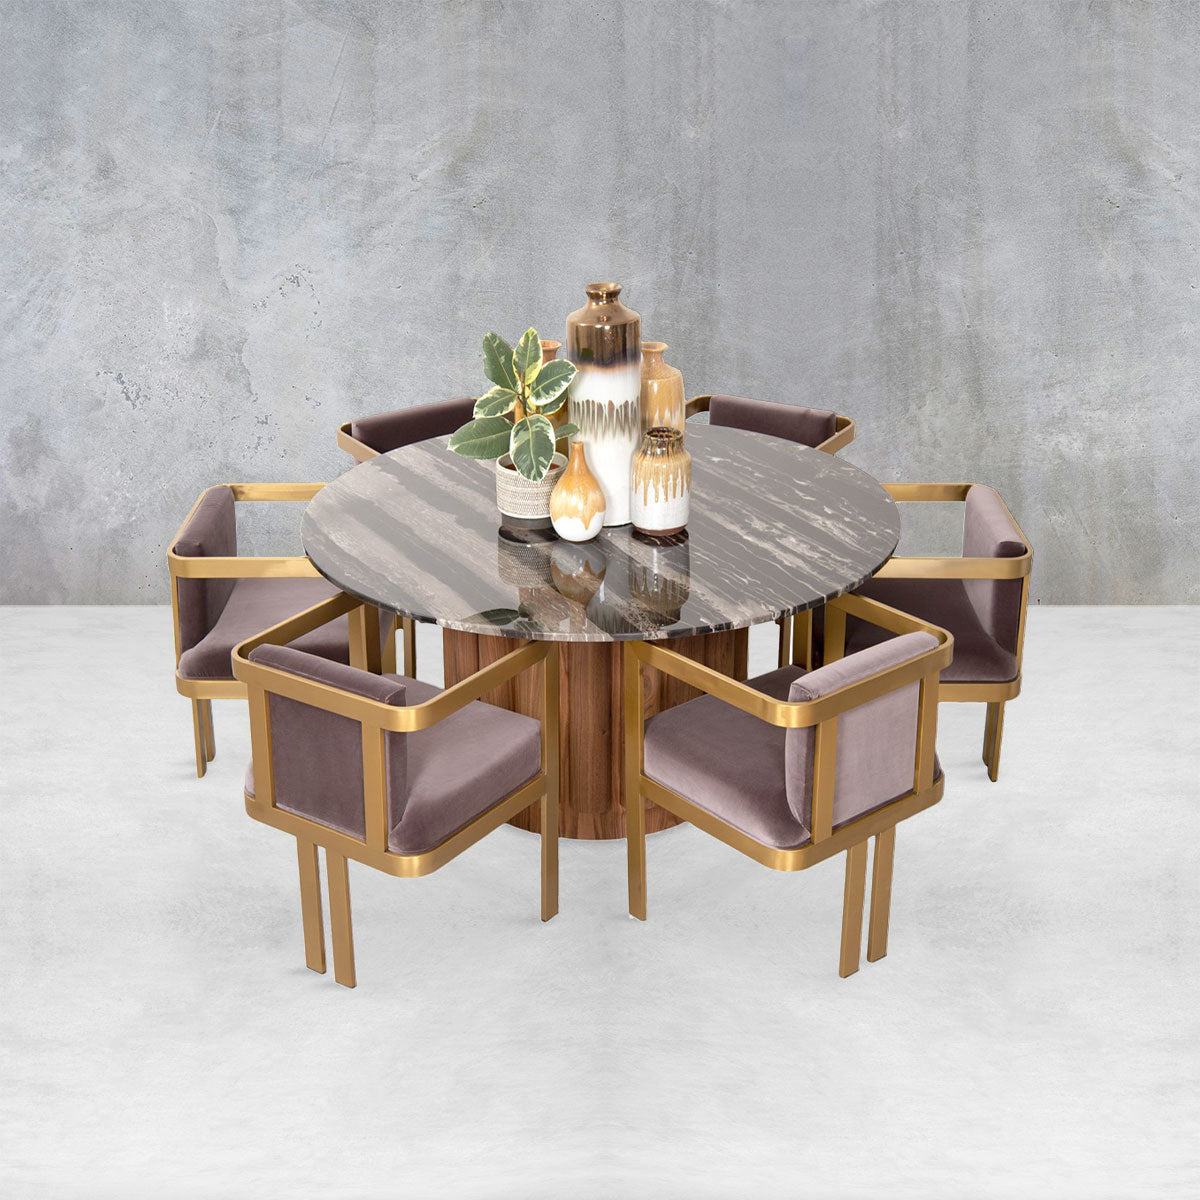 Eden Rock Dining Table in Walnut